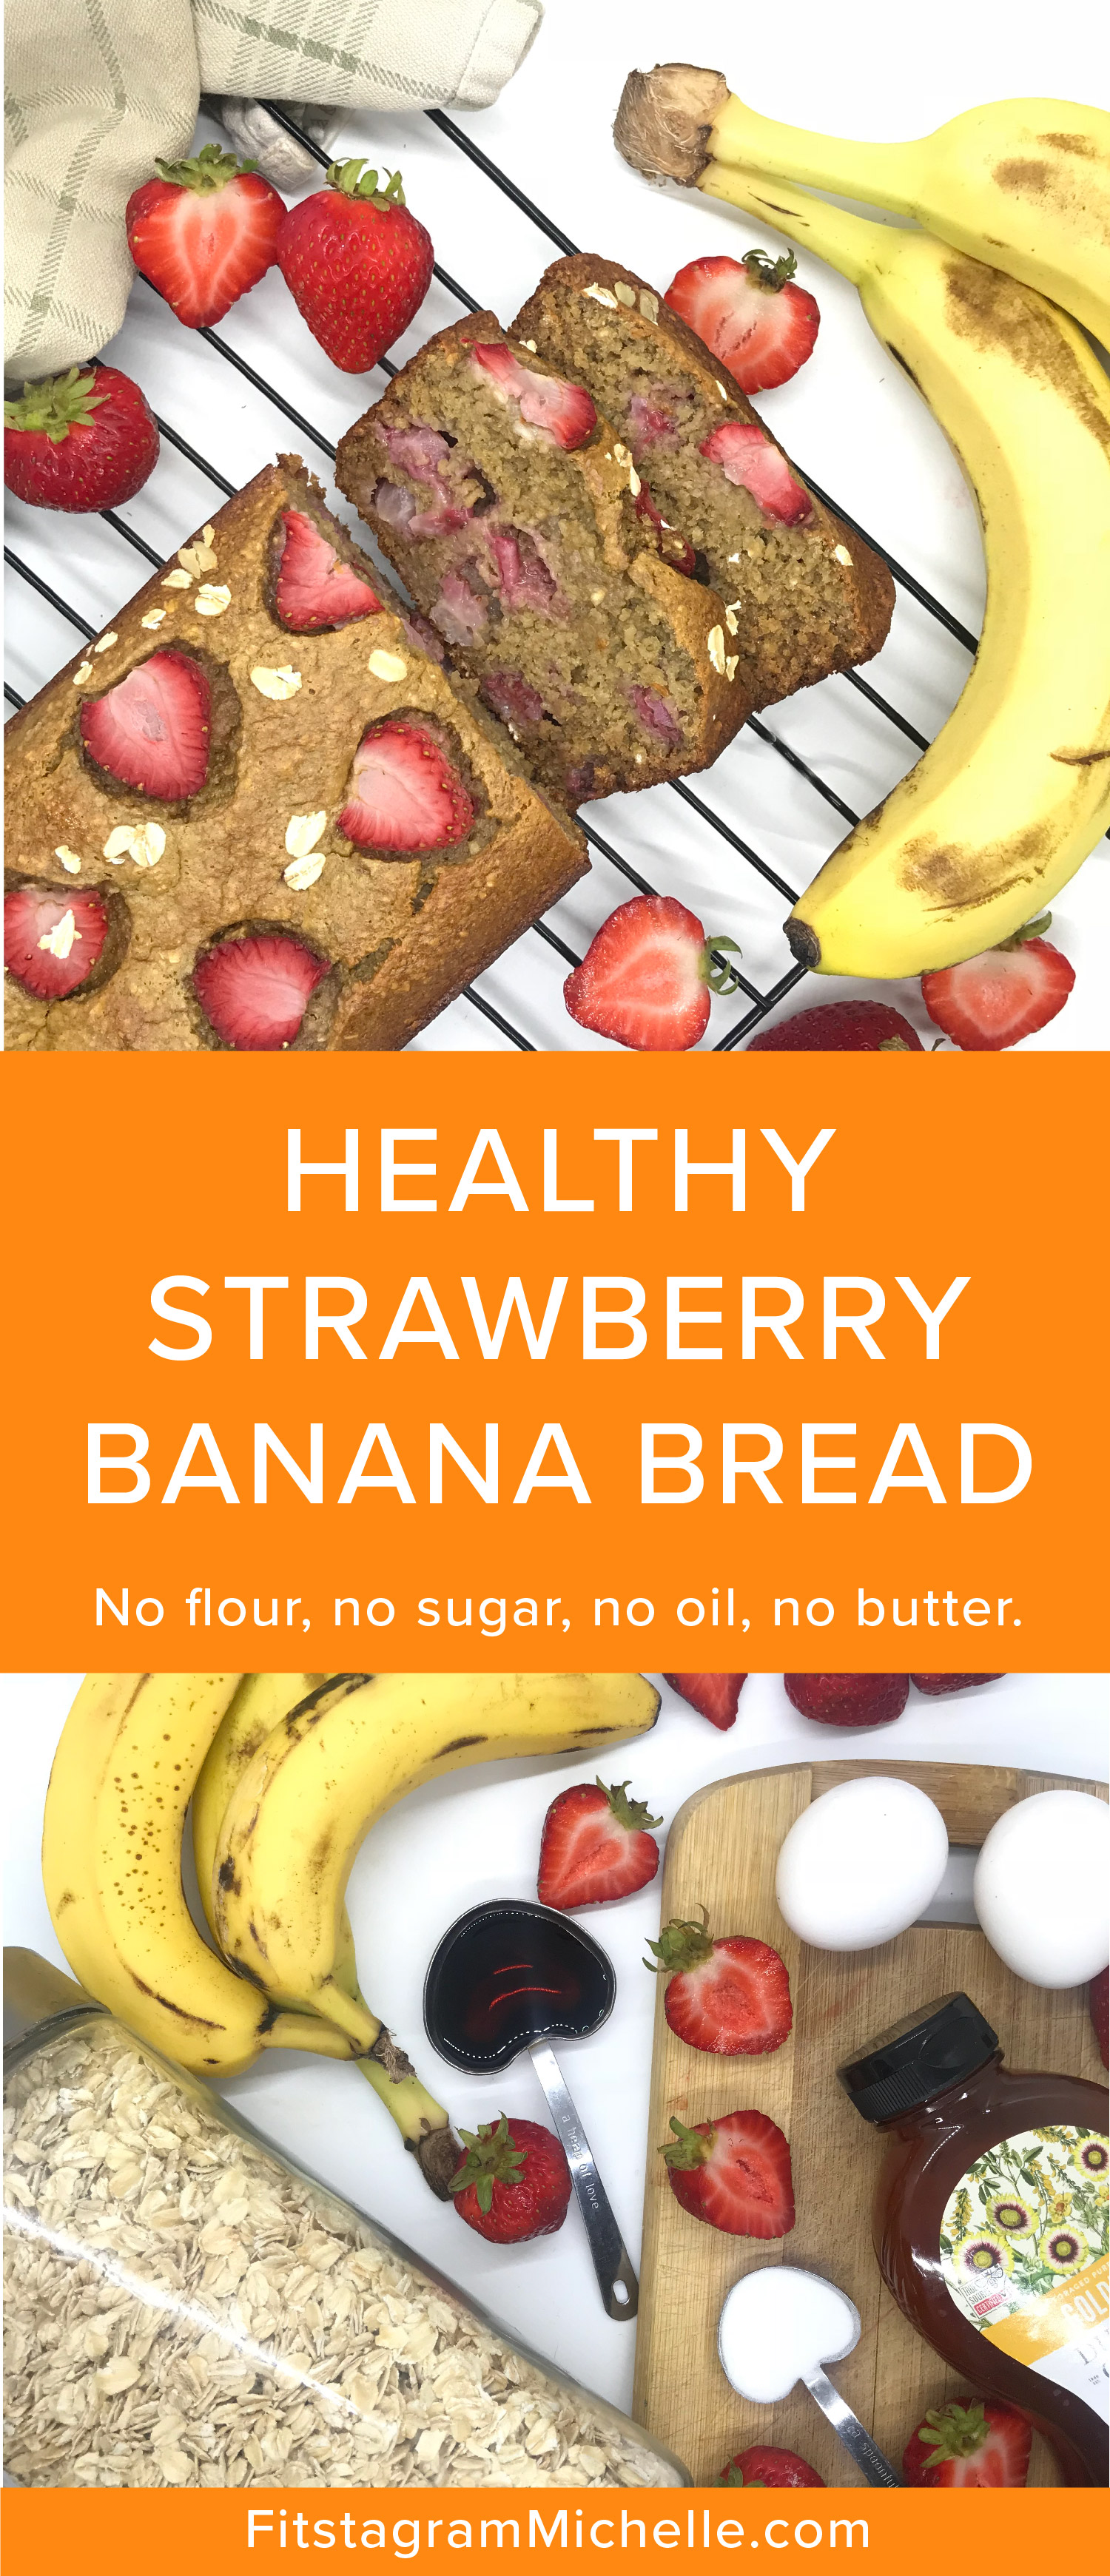 Healthy Strawberry banana bread. No sugar, no flour, no oil, no butter. Moist and delicious for the perfect summer breakfast or snack.